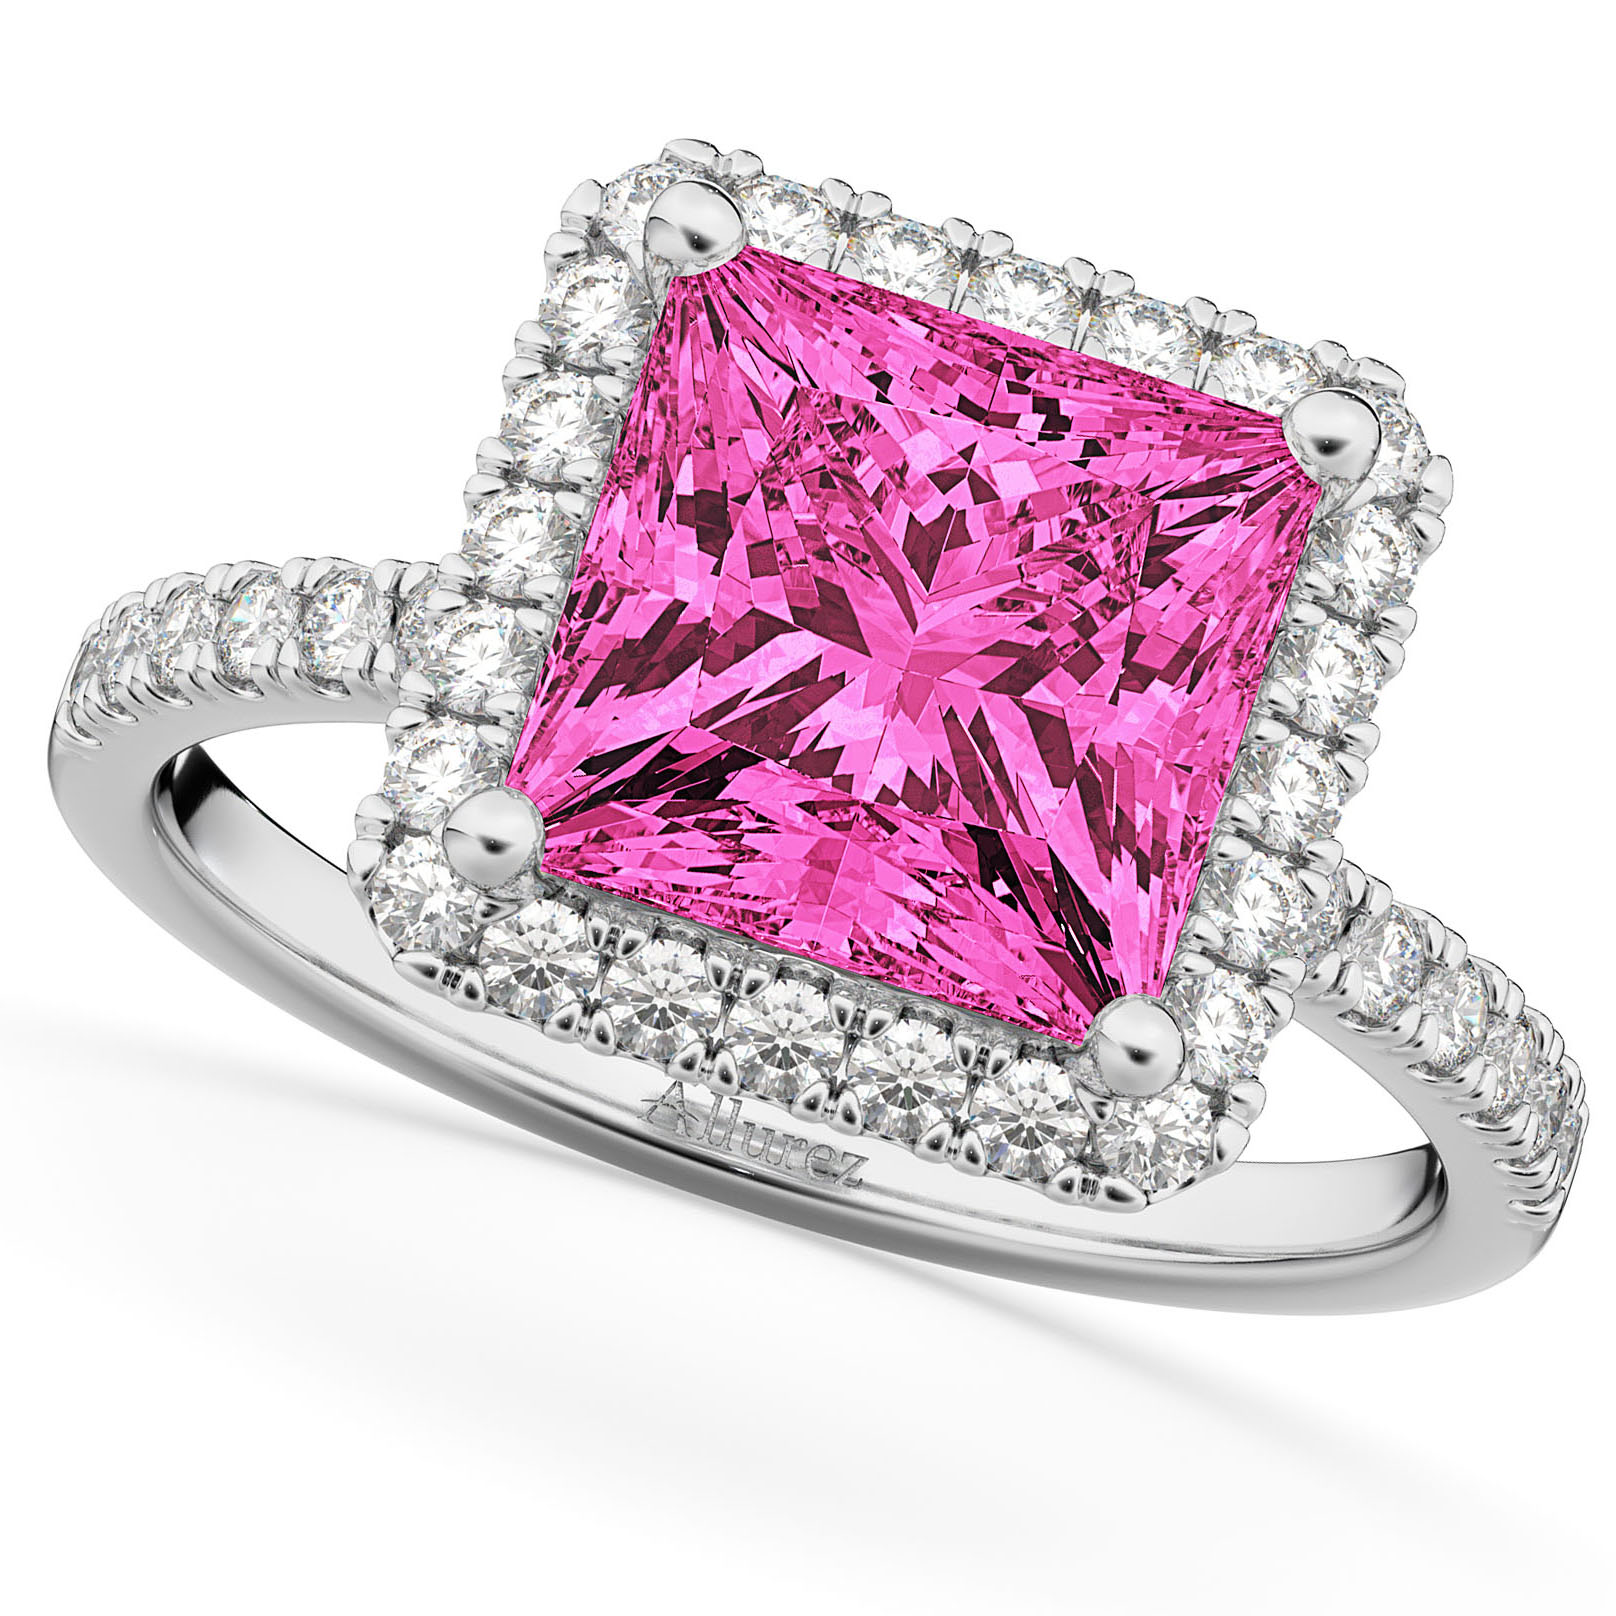 Princess Cut Halo Pink Tourmaline & Diamond Engagement Ring 14K ...